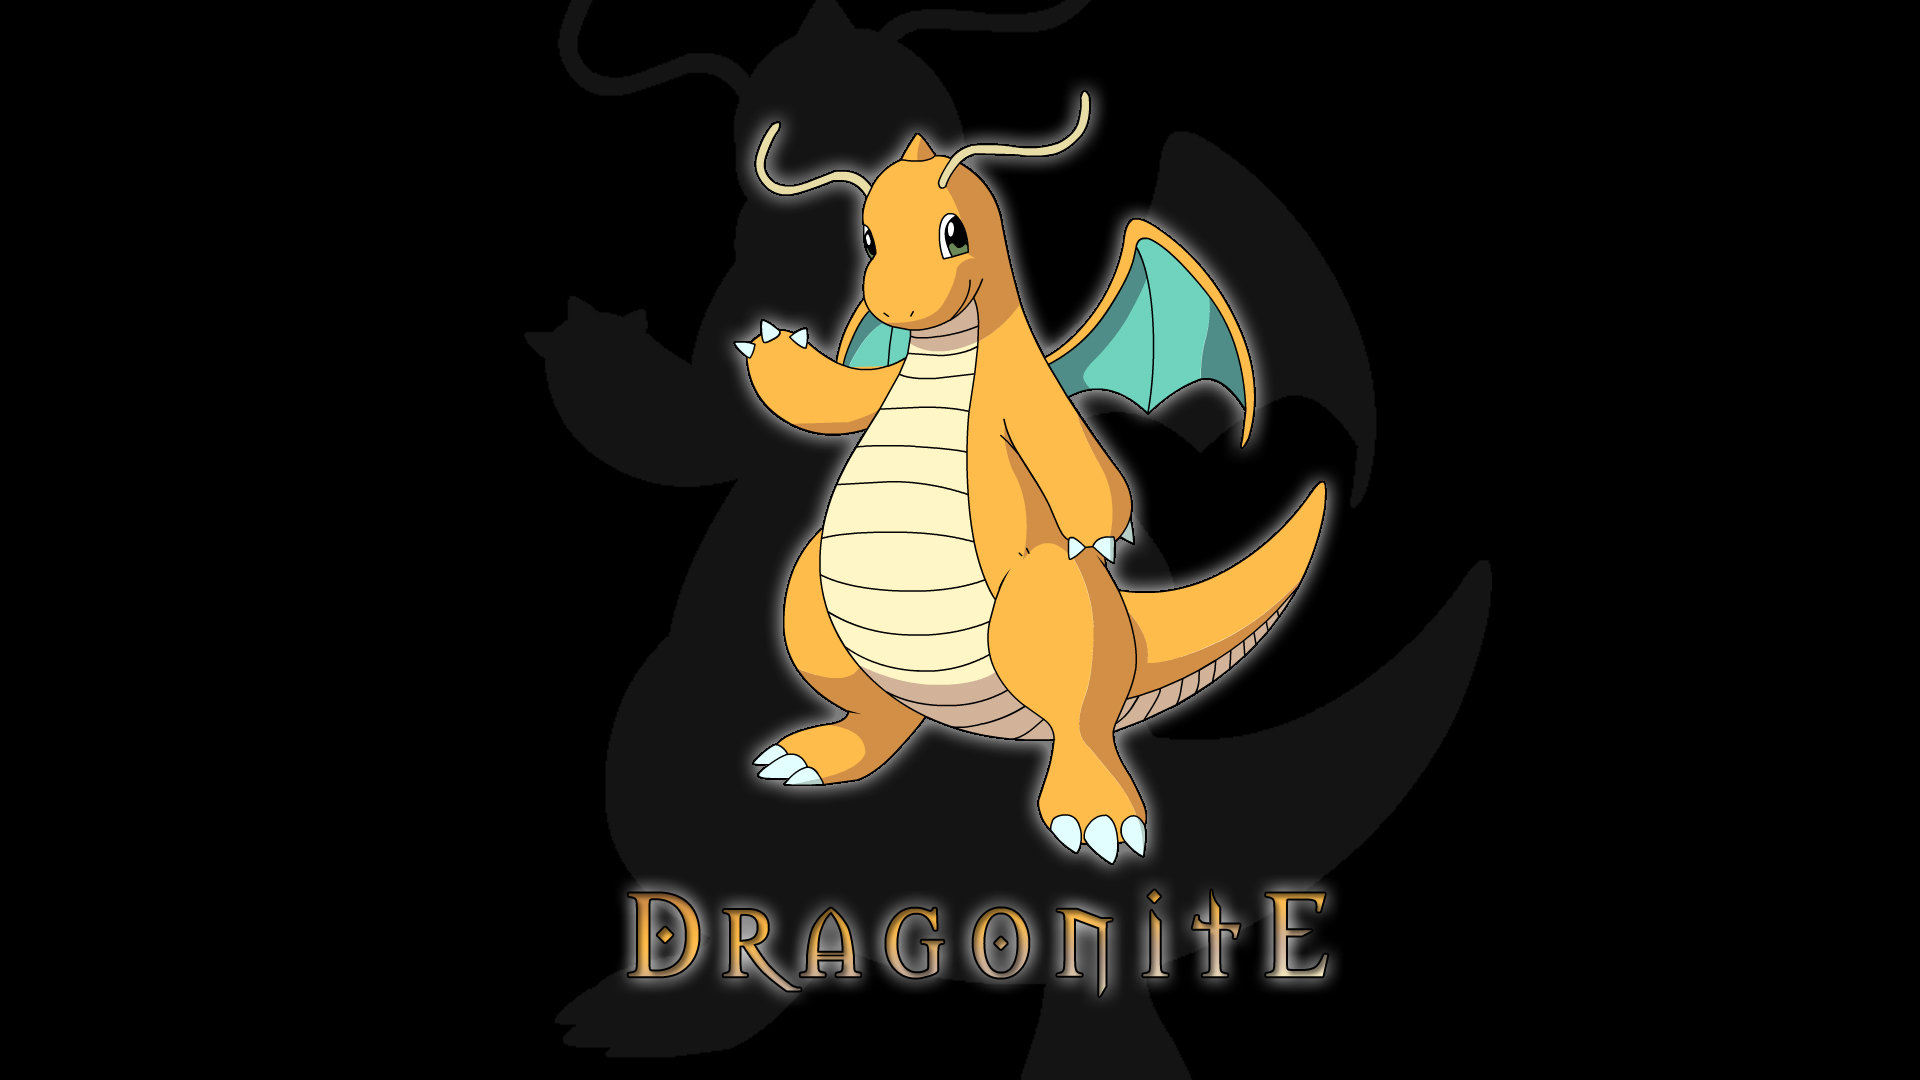 Best Dragonite (Pokemon) wallpaper ID:278966 for High Resolution hd 1080p computer